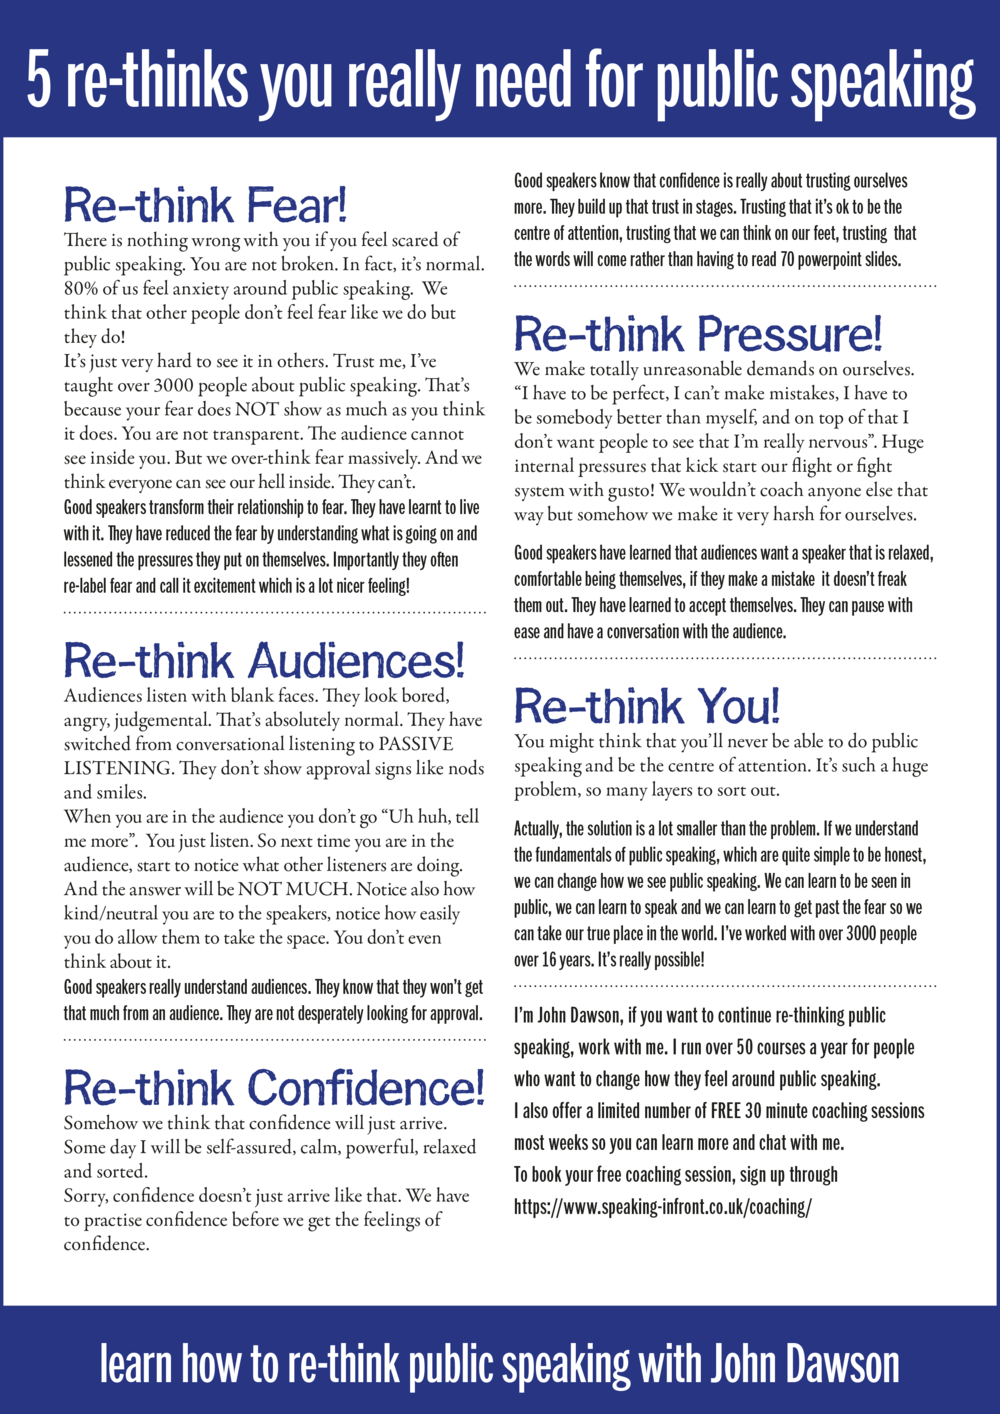 5 re-thinks for public speaking.png